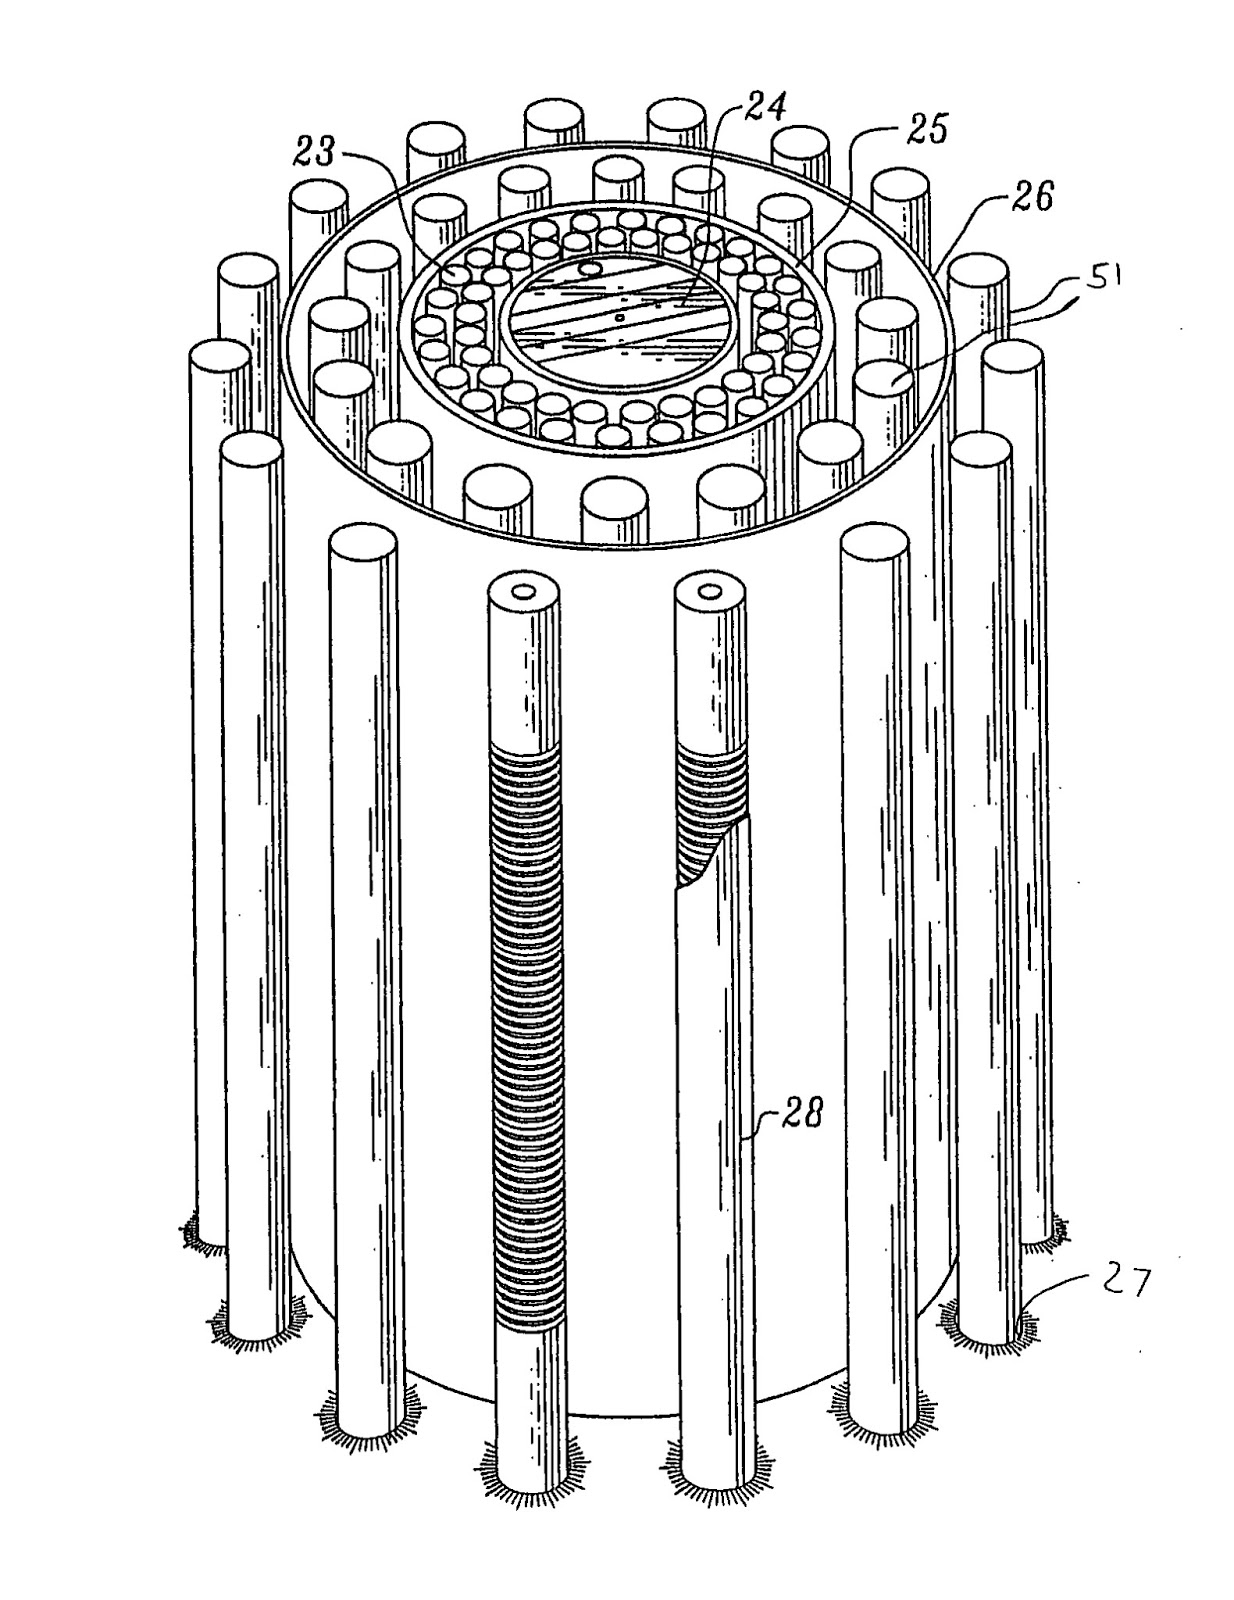 The Tpc Dbi Thorium Nuclear Reactor Patent